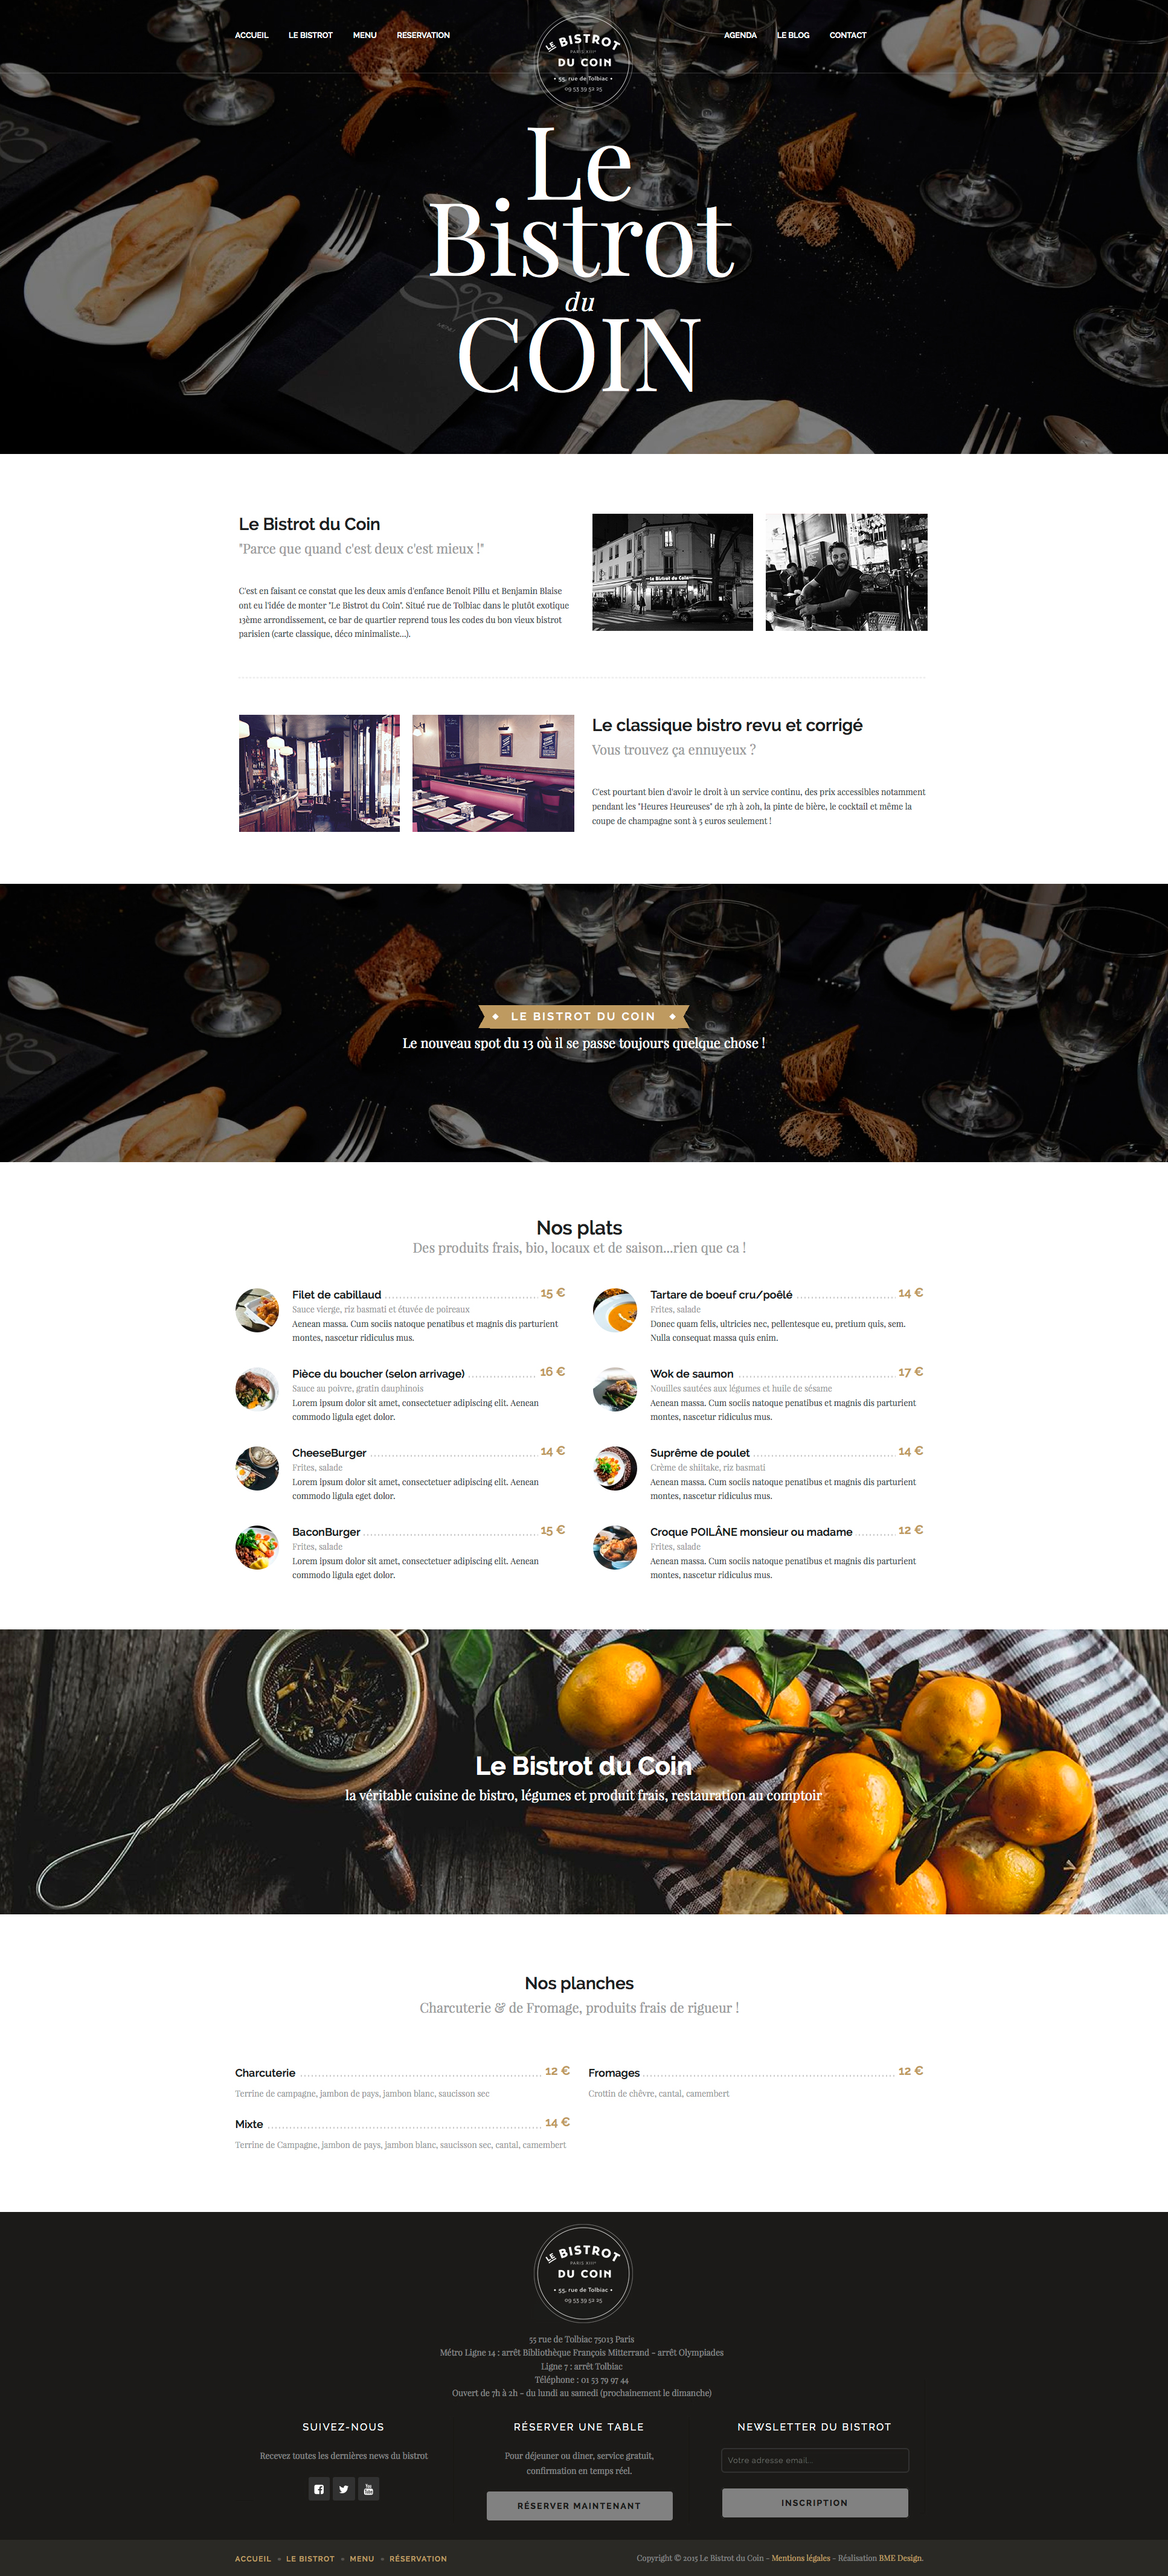 le-bistrot-du-coin-homepage